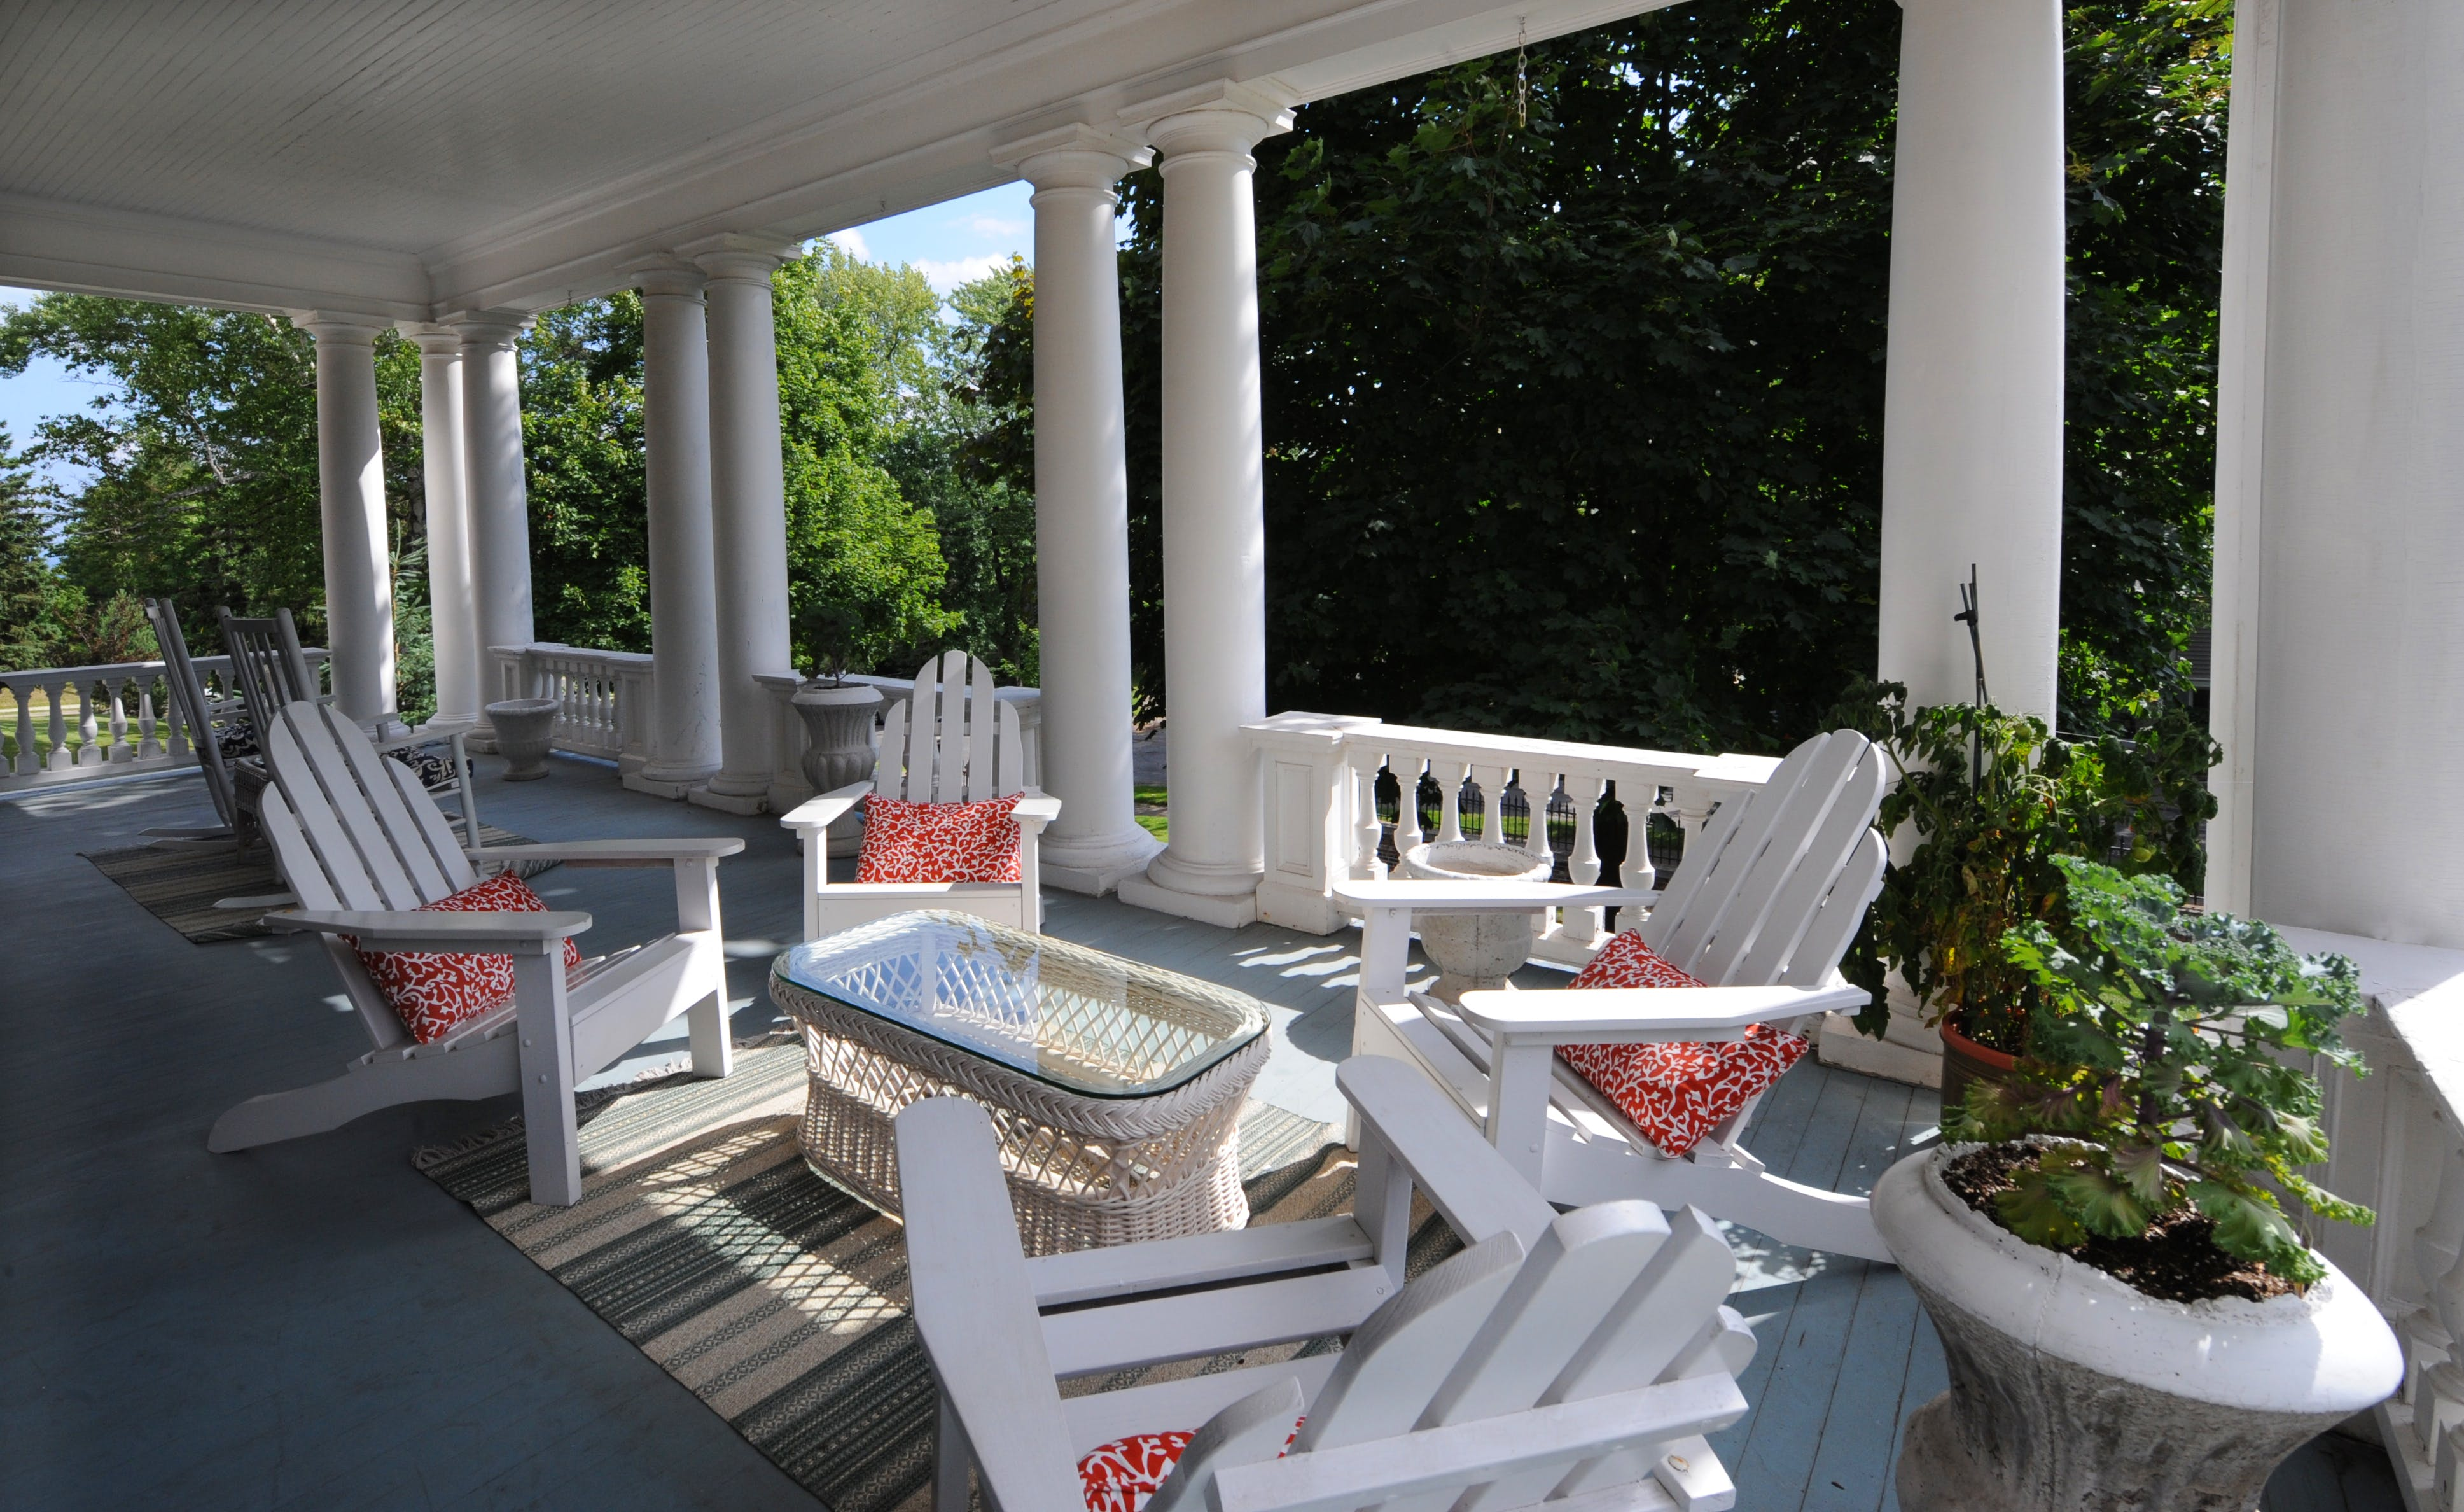 Grand Porch sitting area